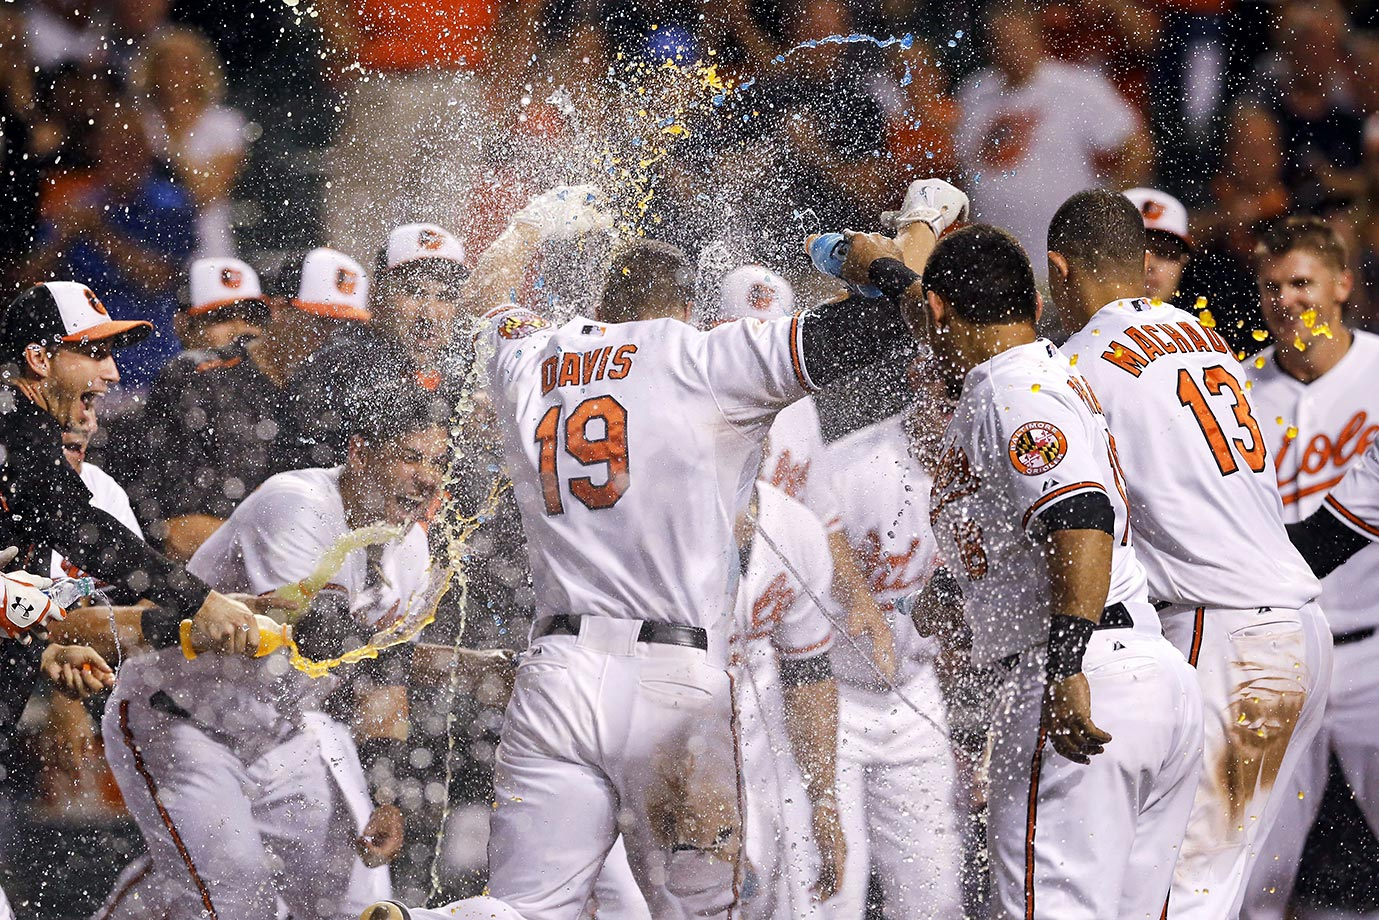 Chris Davis of the Baltimore Orioles is greeted as he crosses home plate after hitting a solo home run during the 11th inning to beat the Tampa Bay Rays 7-1 on Sept. 2.  Here are the other players who've gone yard this year to end a game.